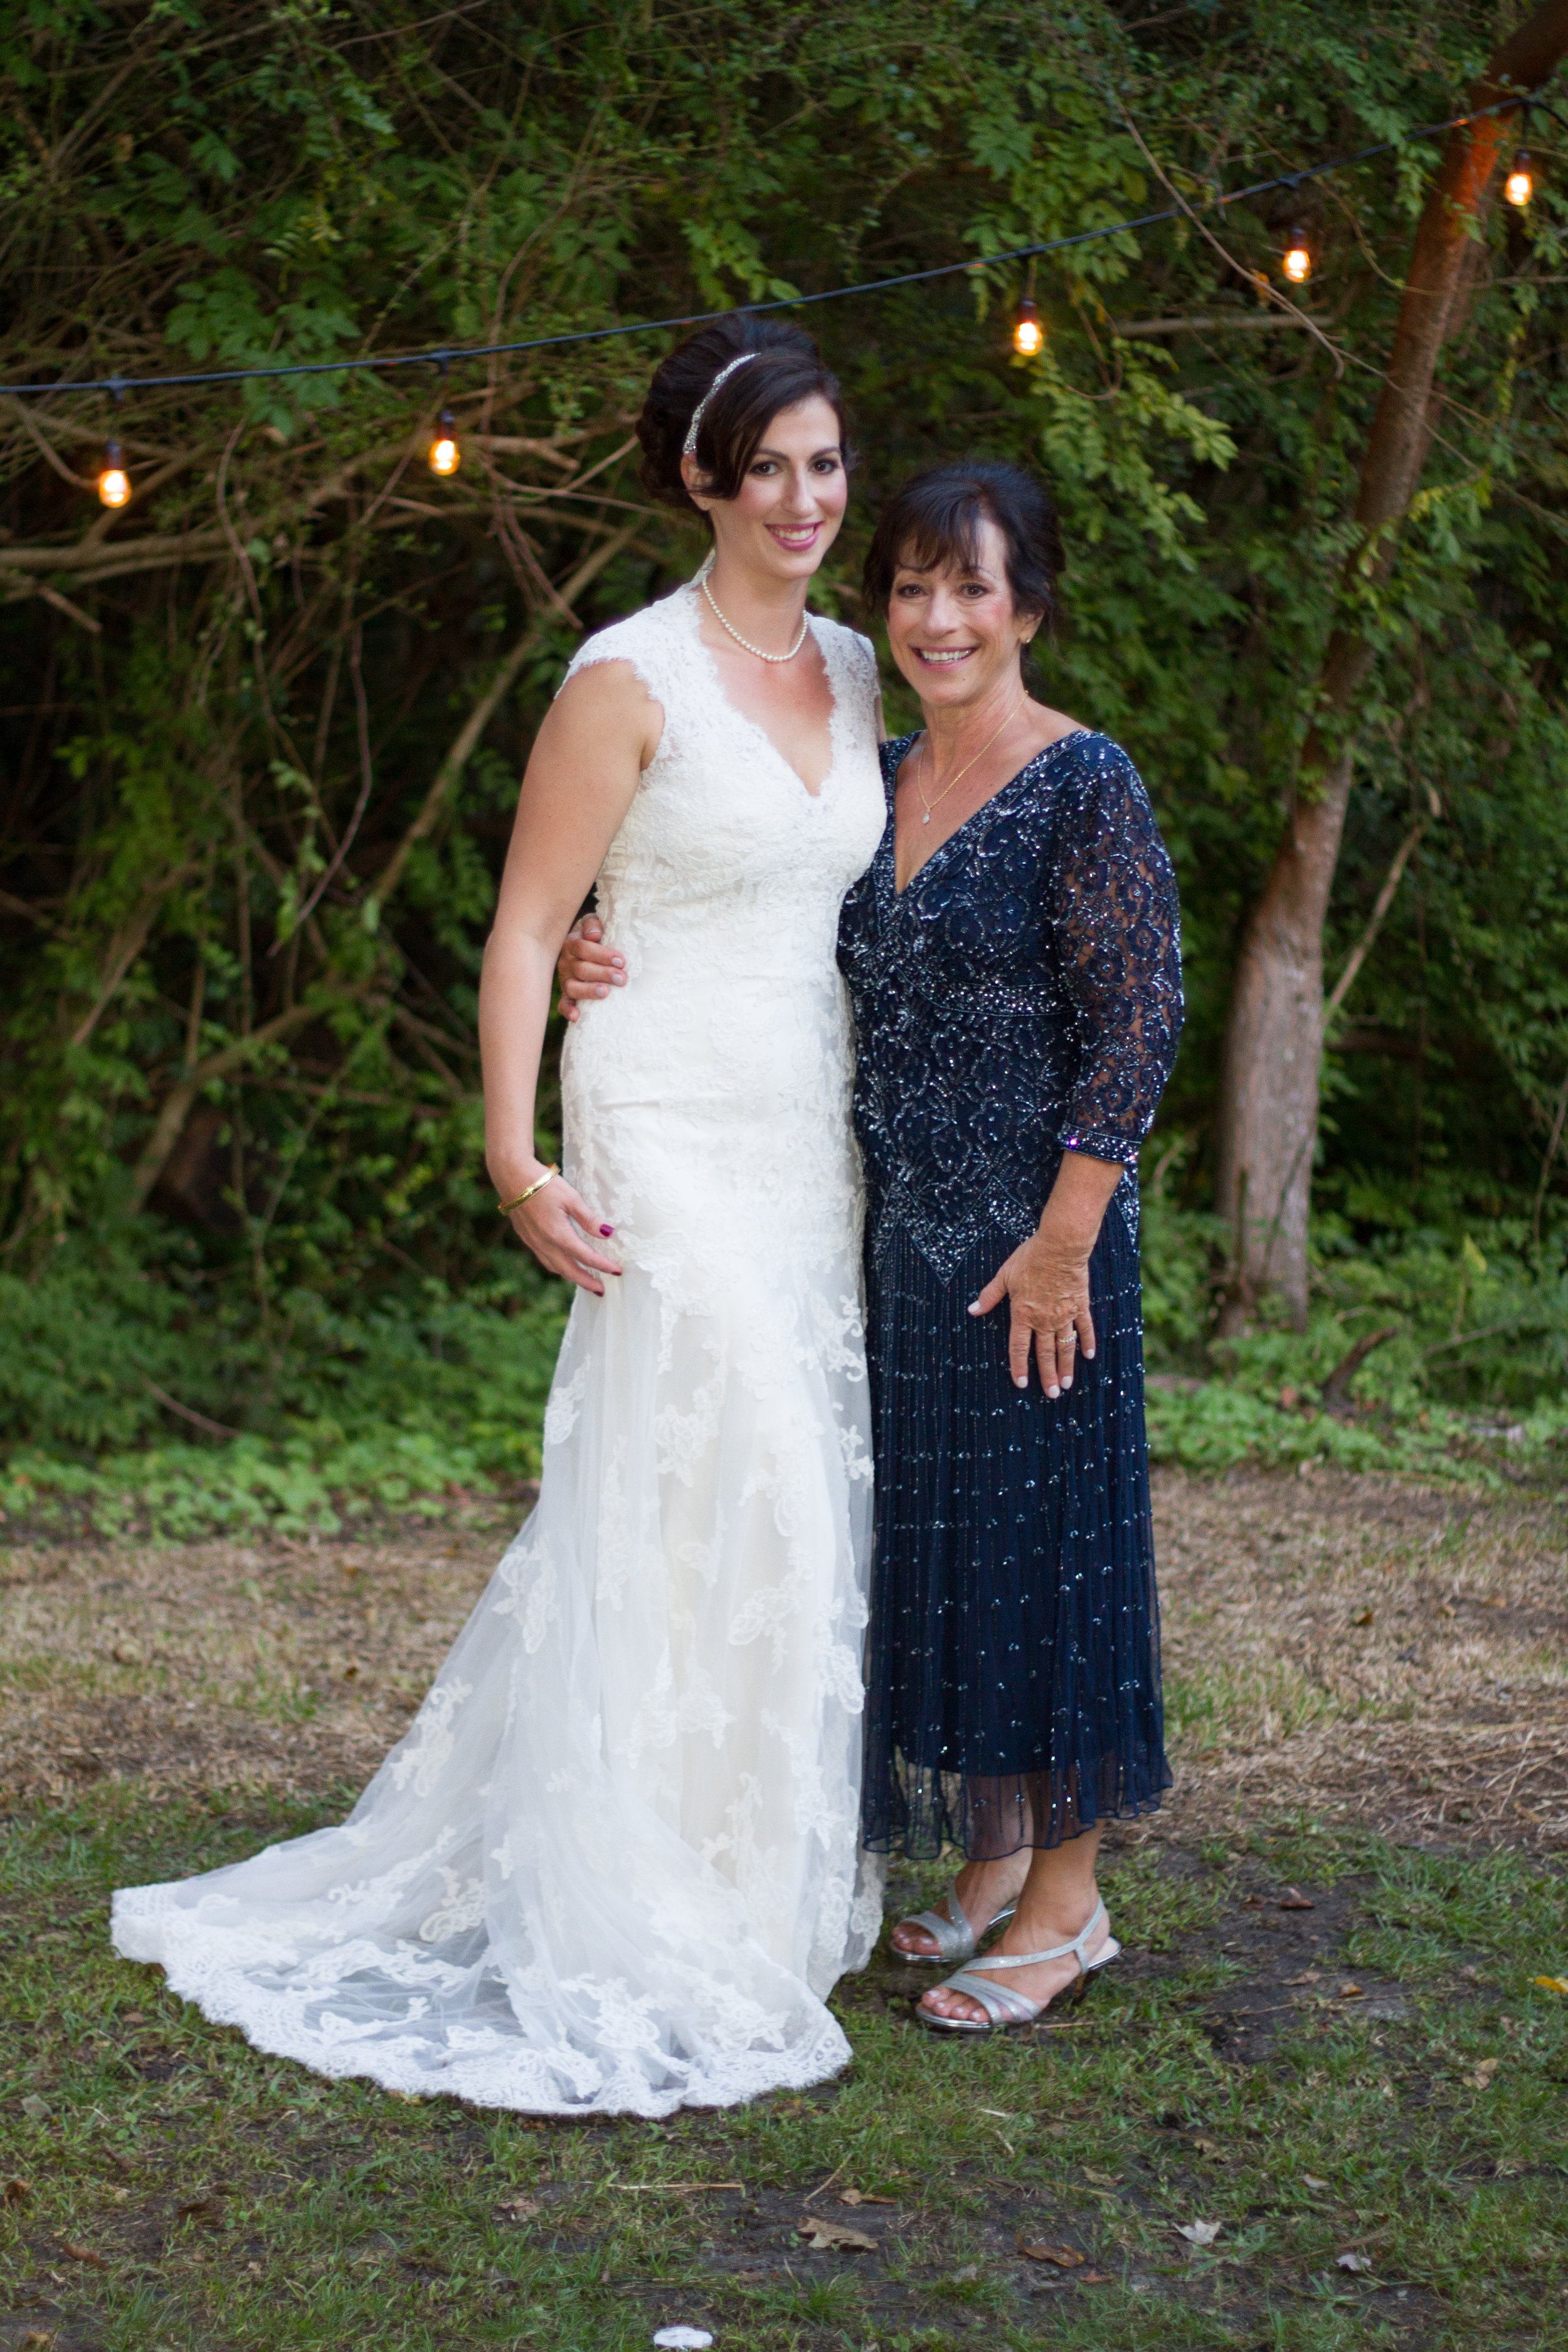 Jacqueline and Shawn Wedding (420 of 597).jpg